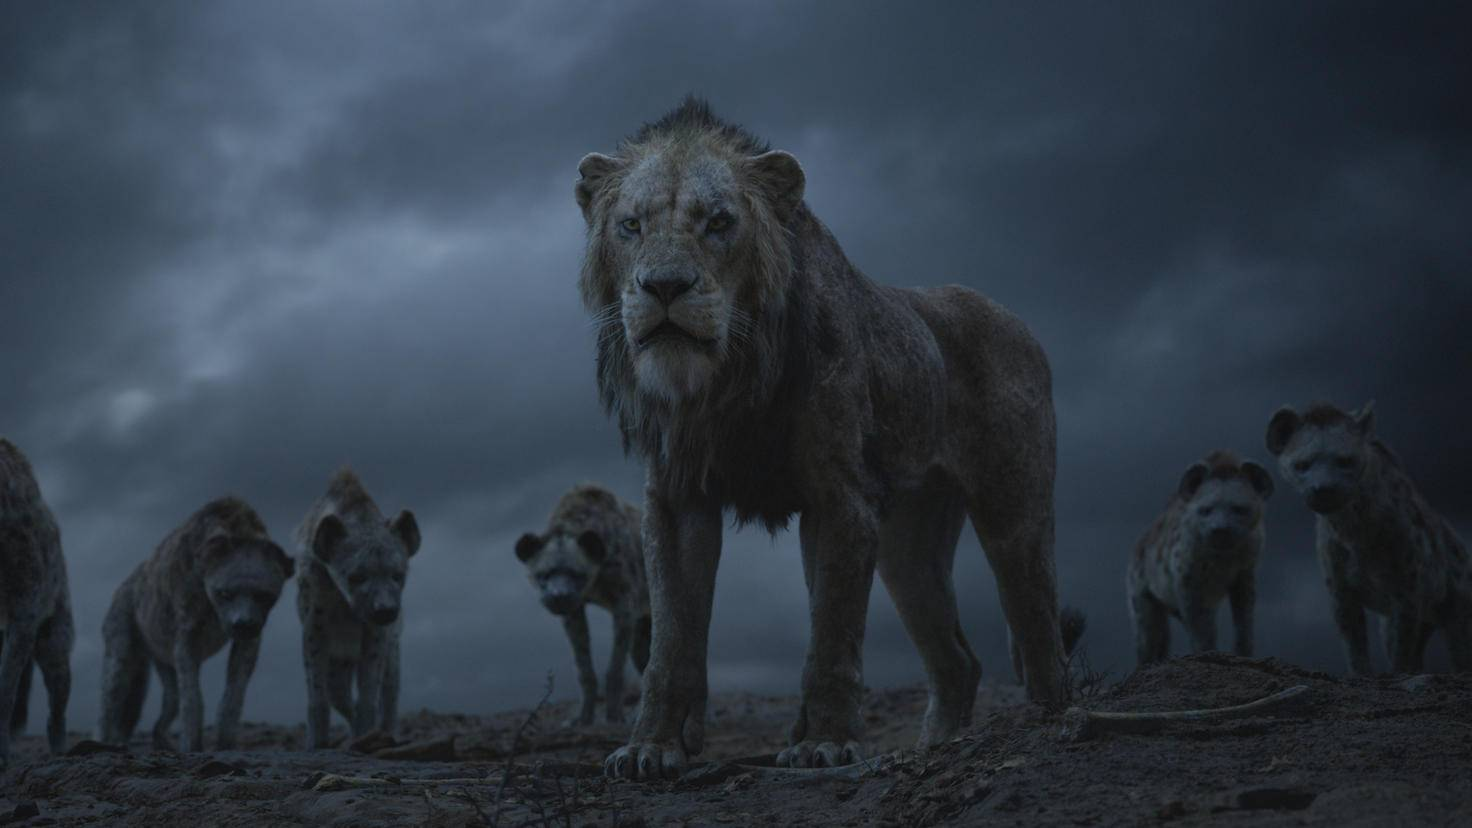 Scar appoints himself after Mufasa's death without further ado the king of the lions.